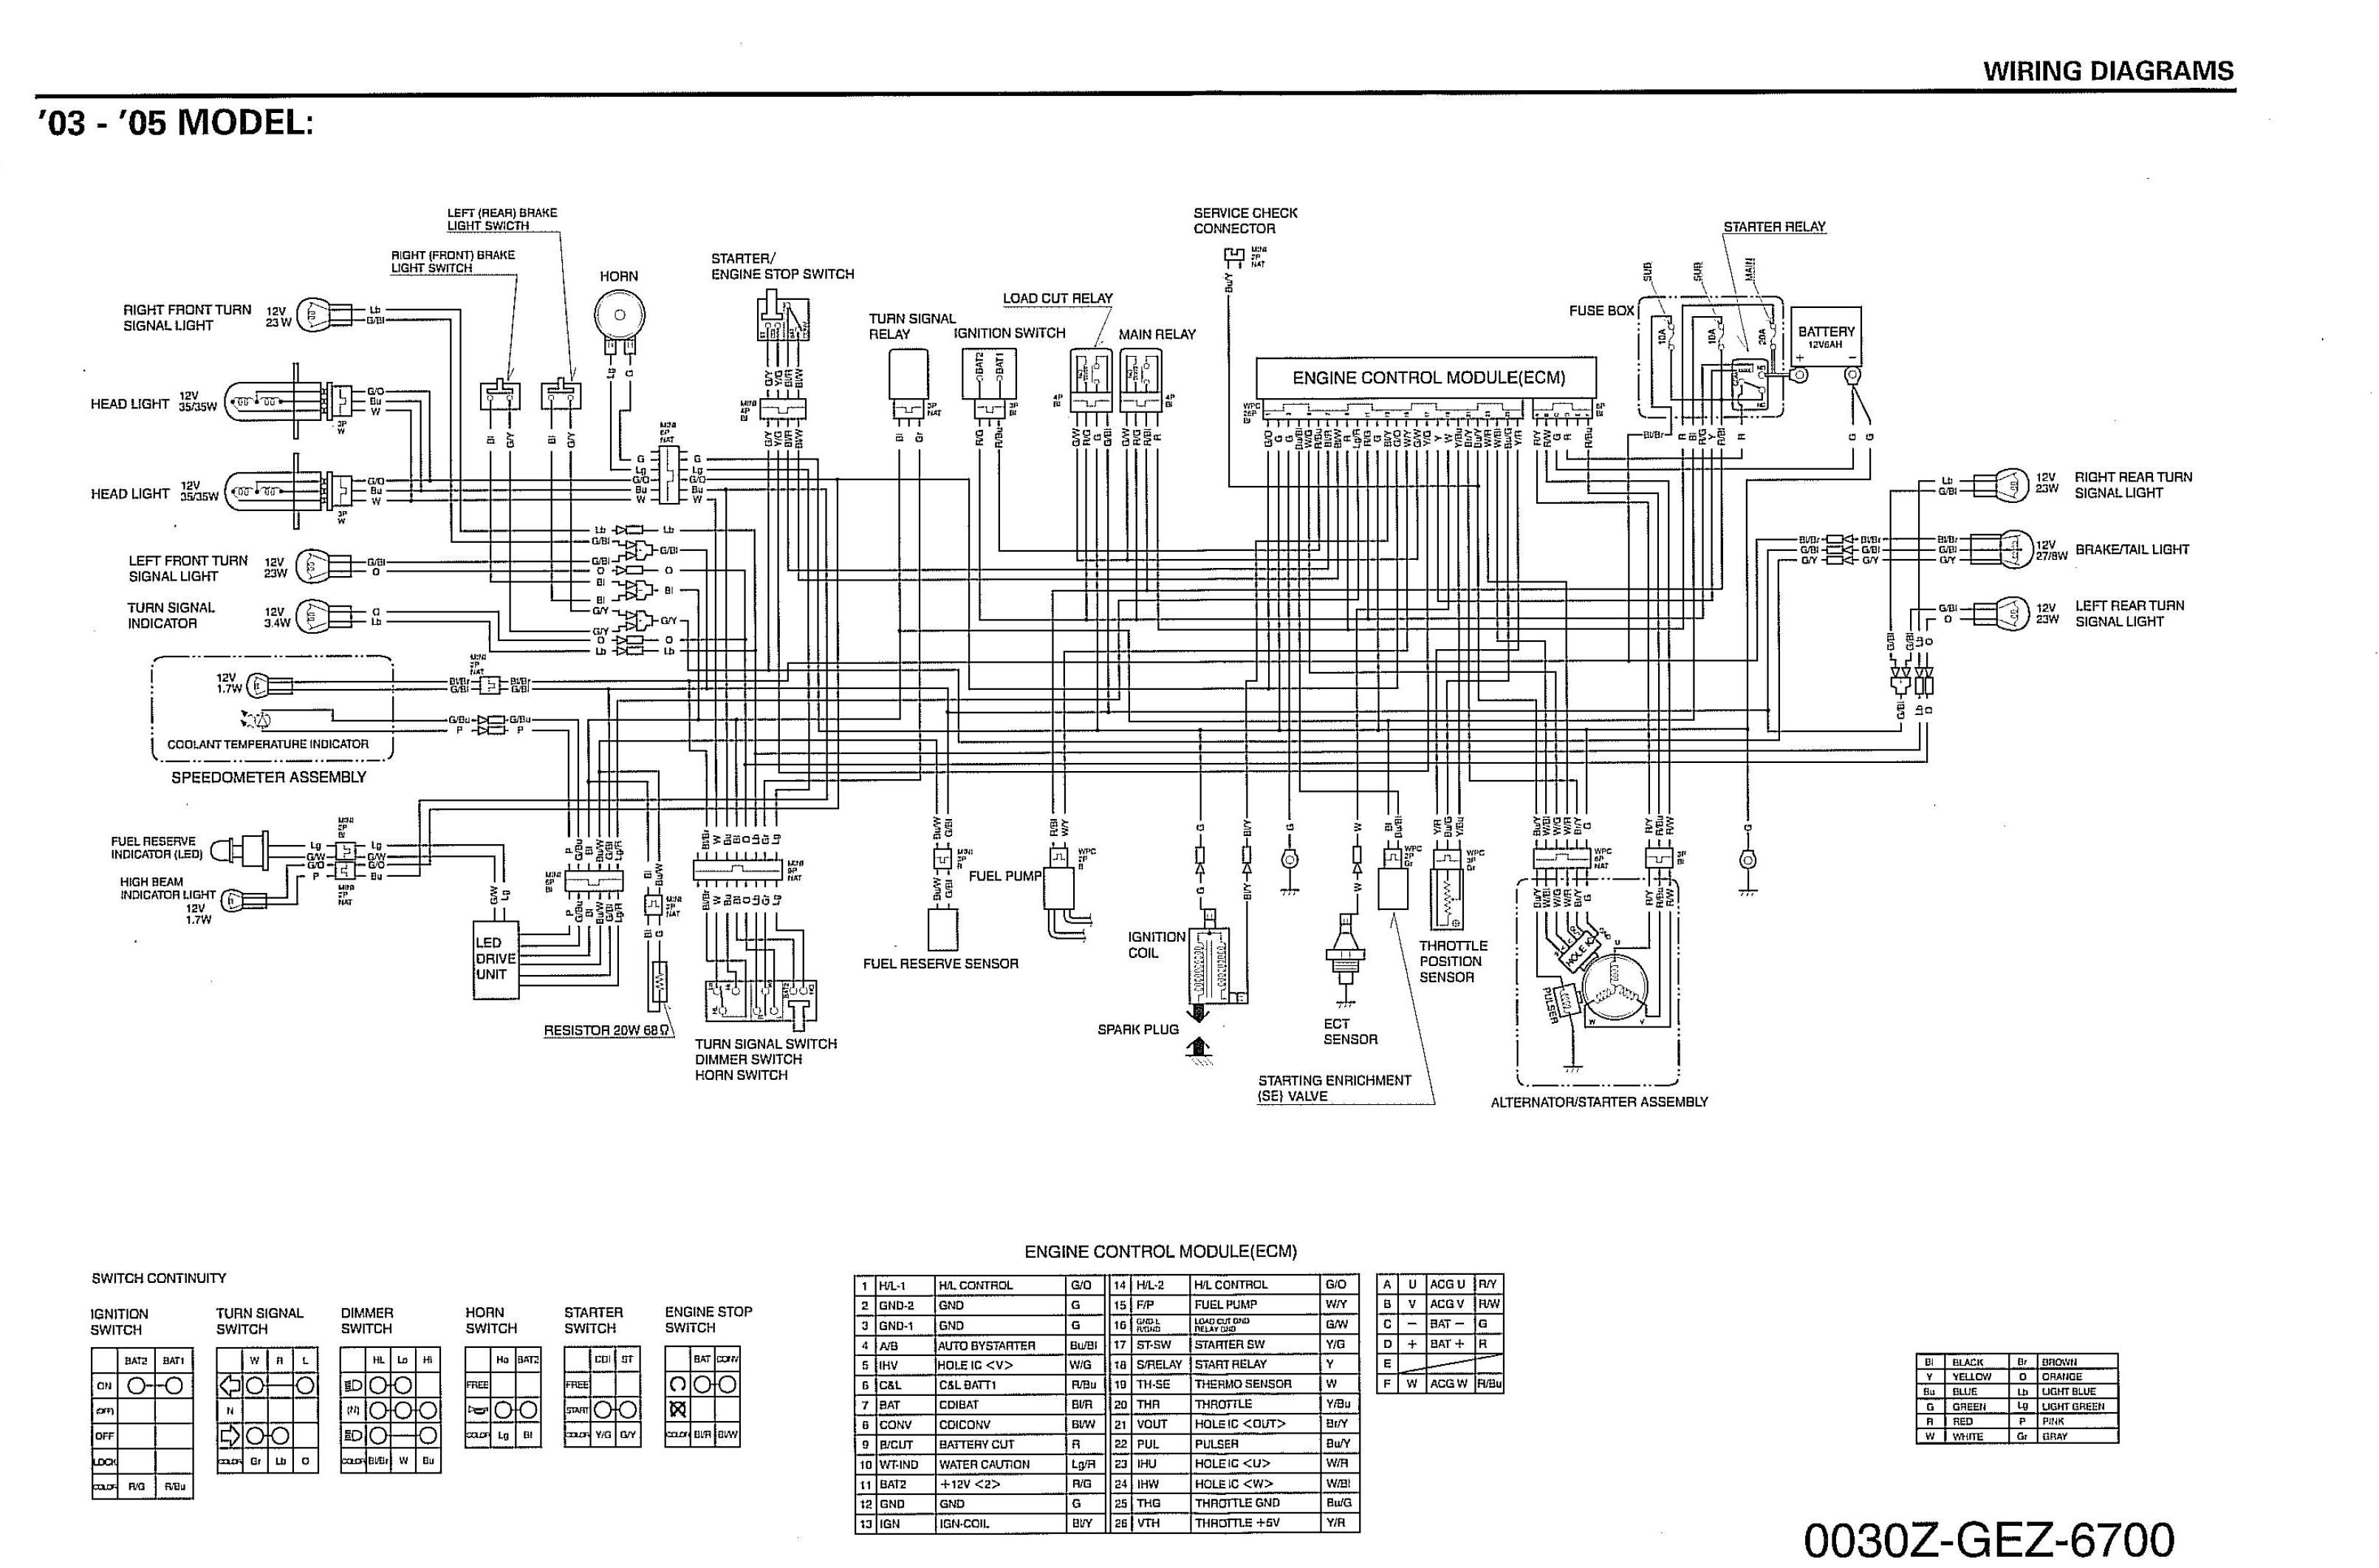 04 Rx330 Wiring Diagrams Wiring Diagram And Fuse Box